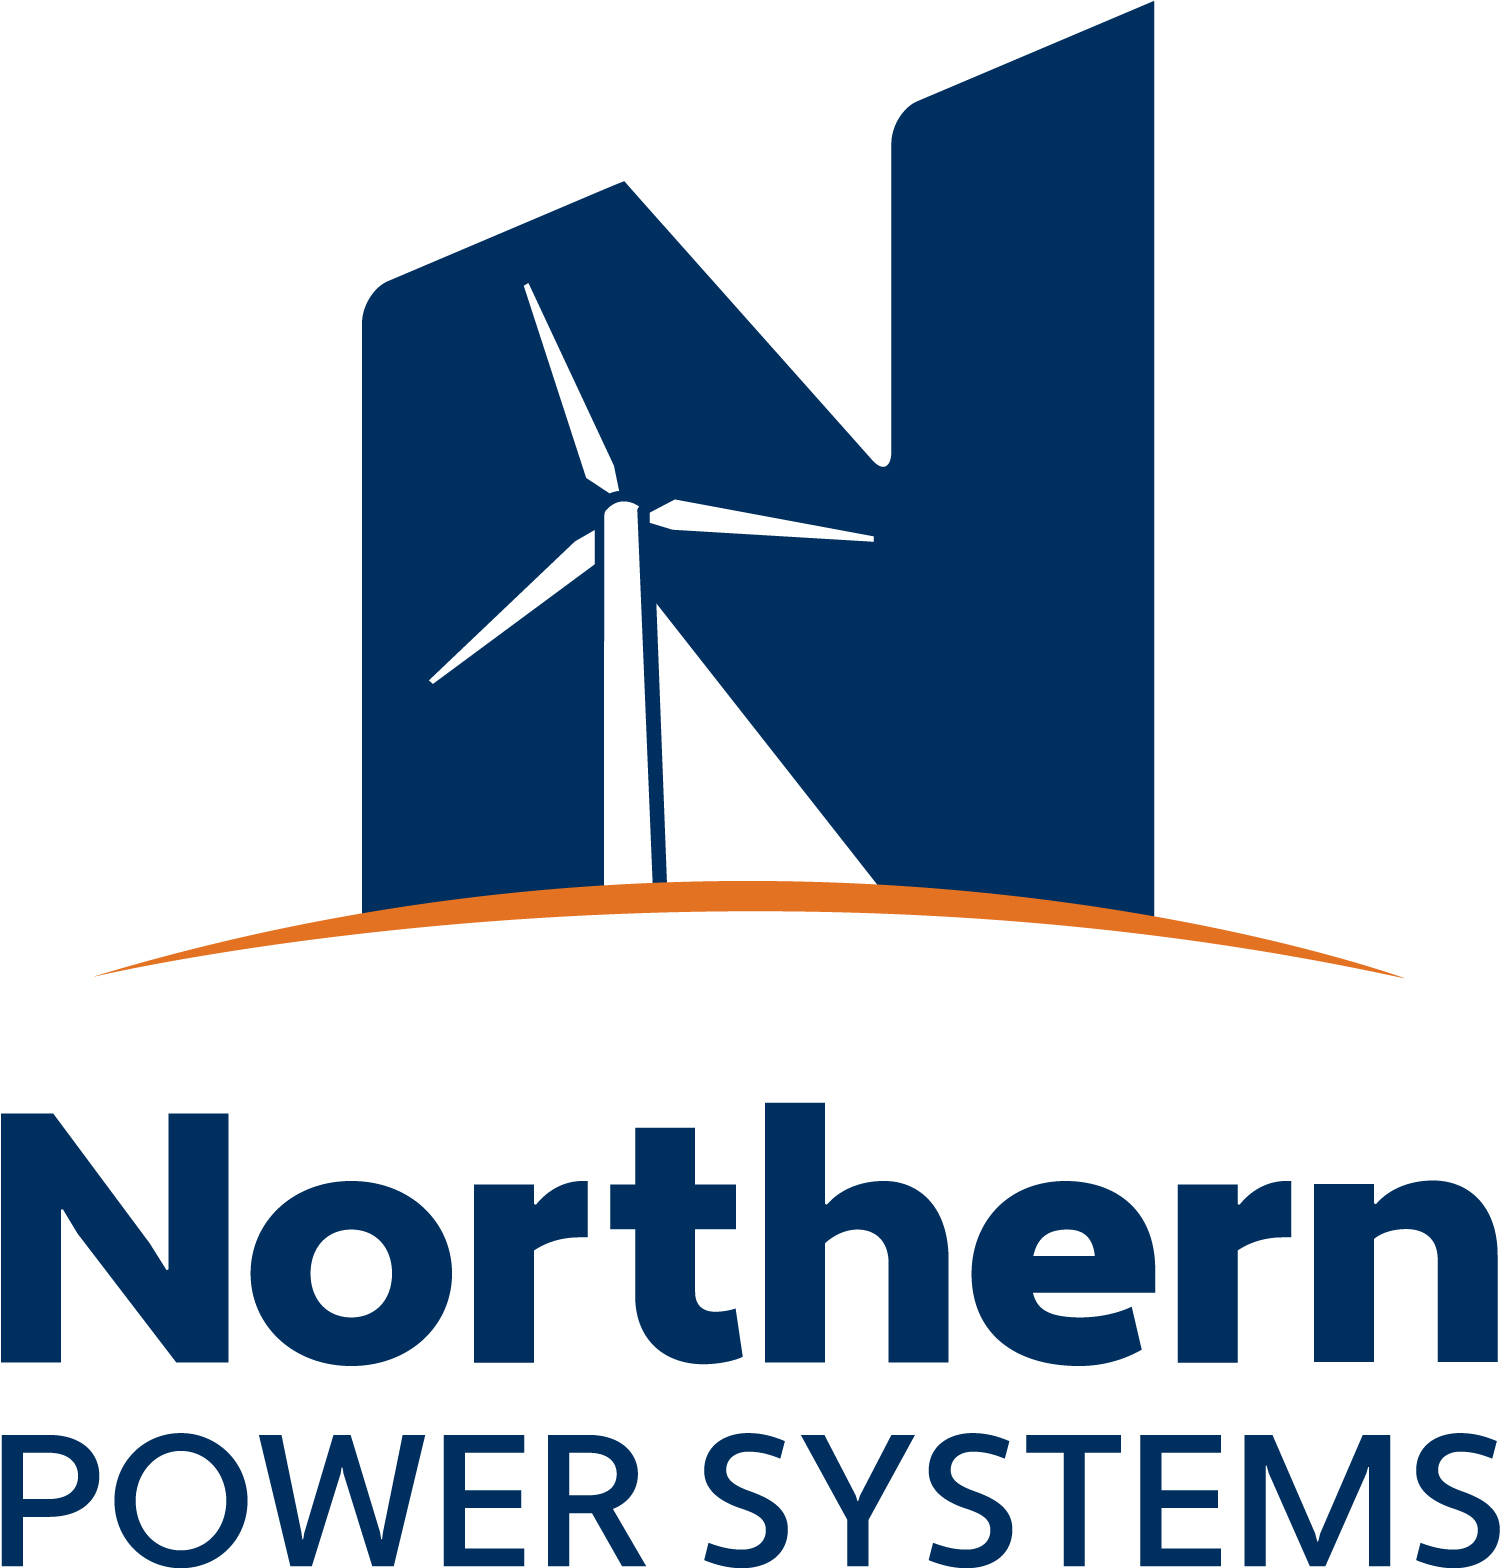 Northern Power Systems logo - Xconomy